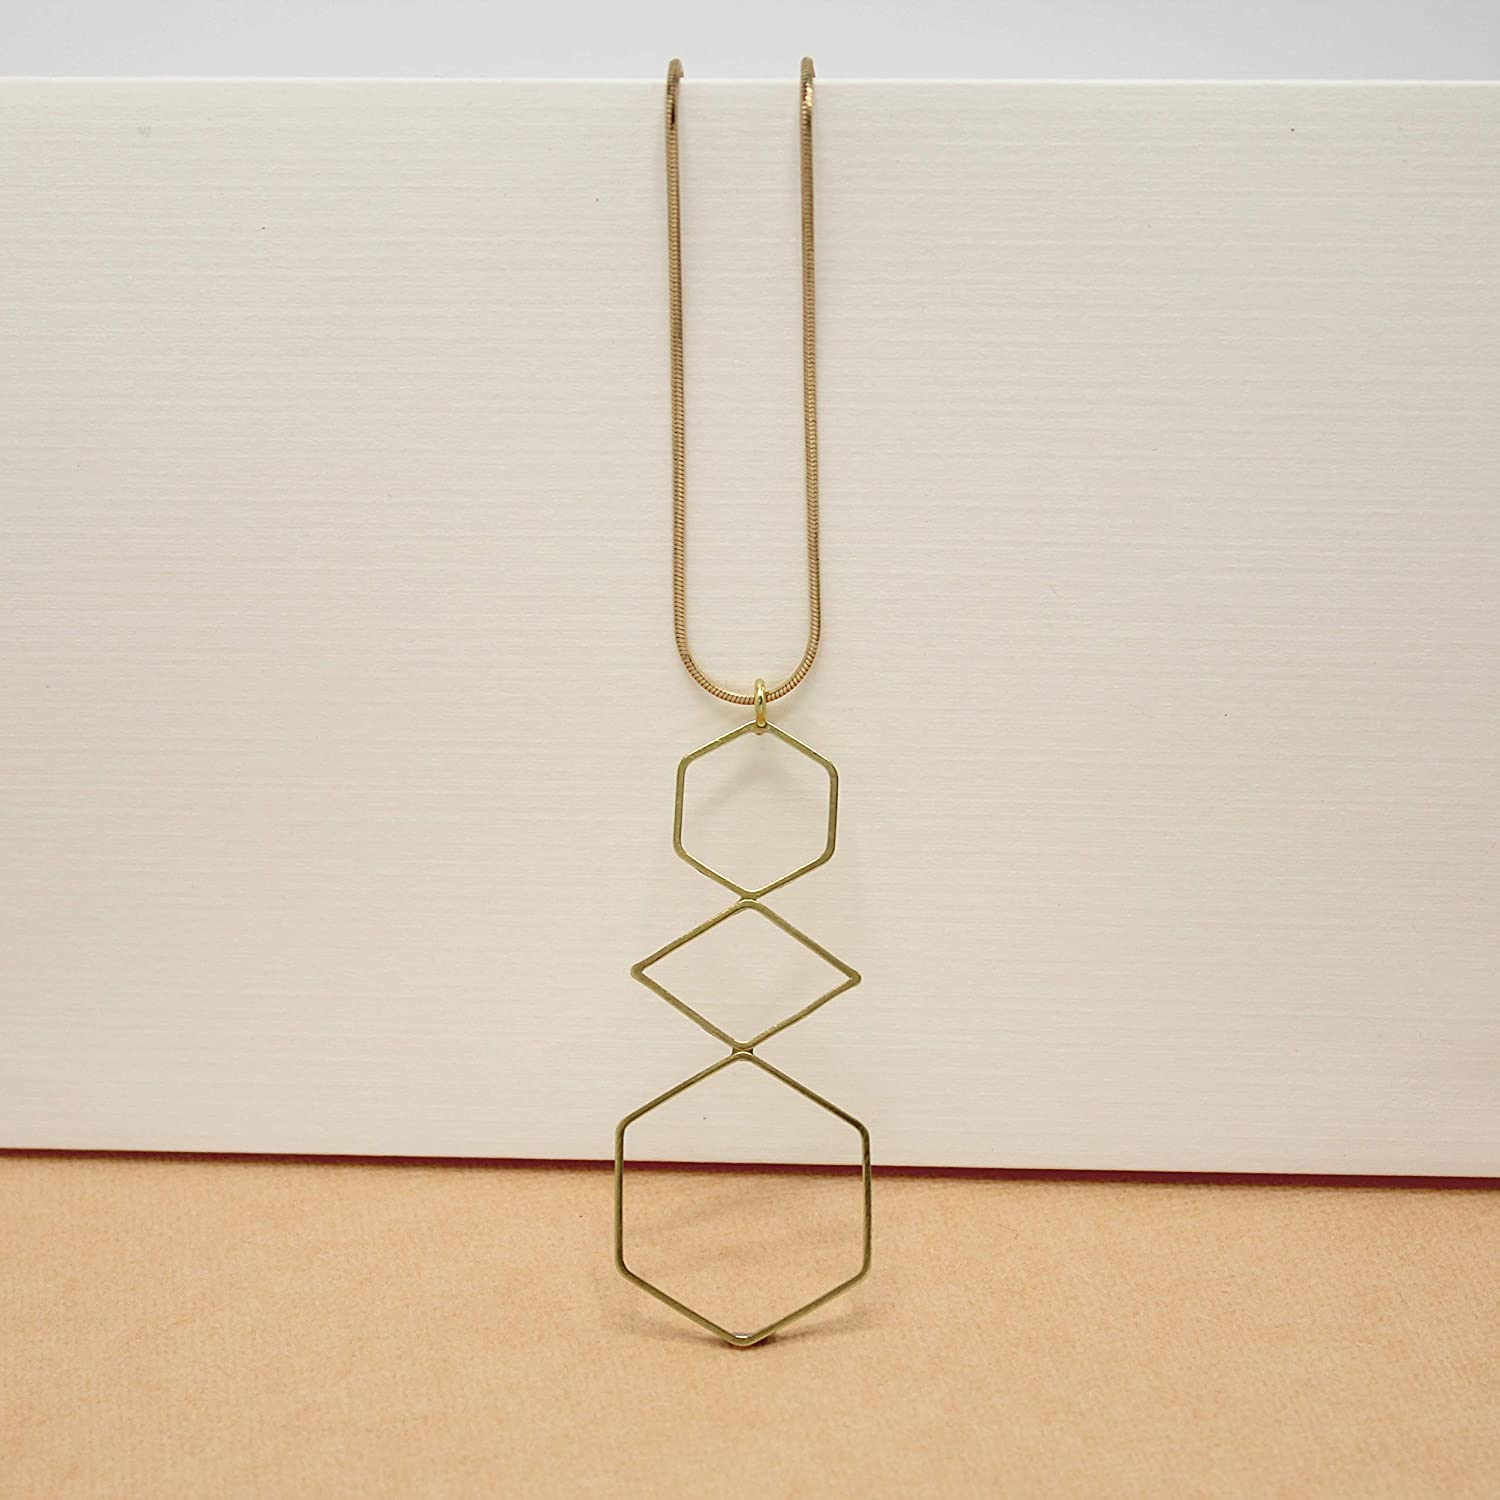 Gold Pendant Chain Necklace Handmade Minimalist Jewelry Gifts for Women Girls MASHALLAH Simple Dainty Delicate Geometric Necklace